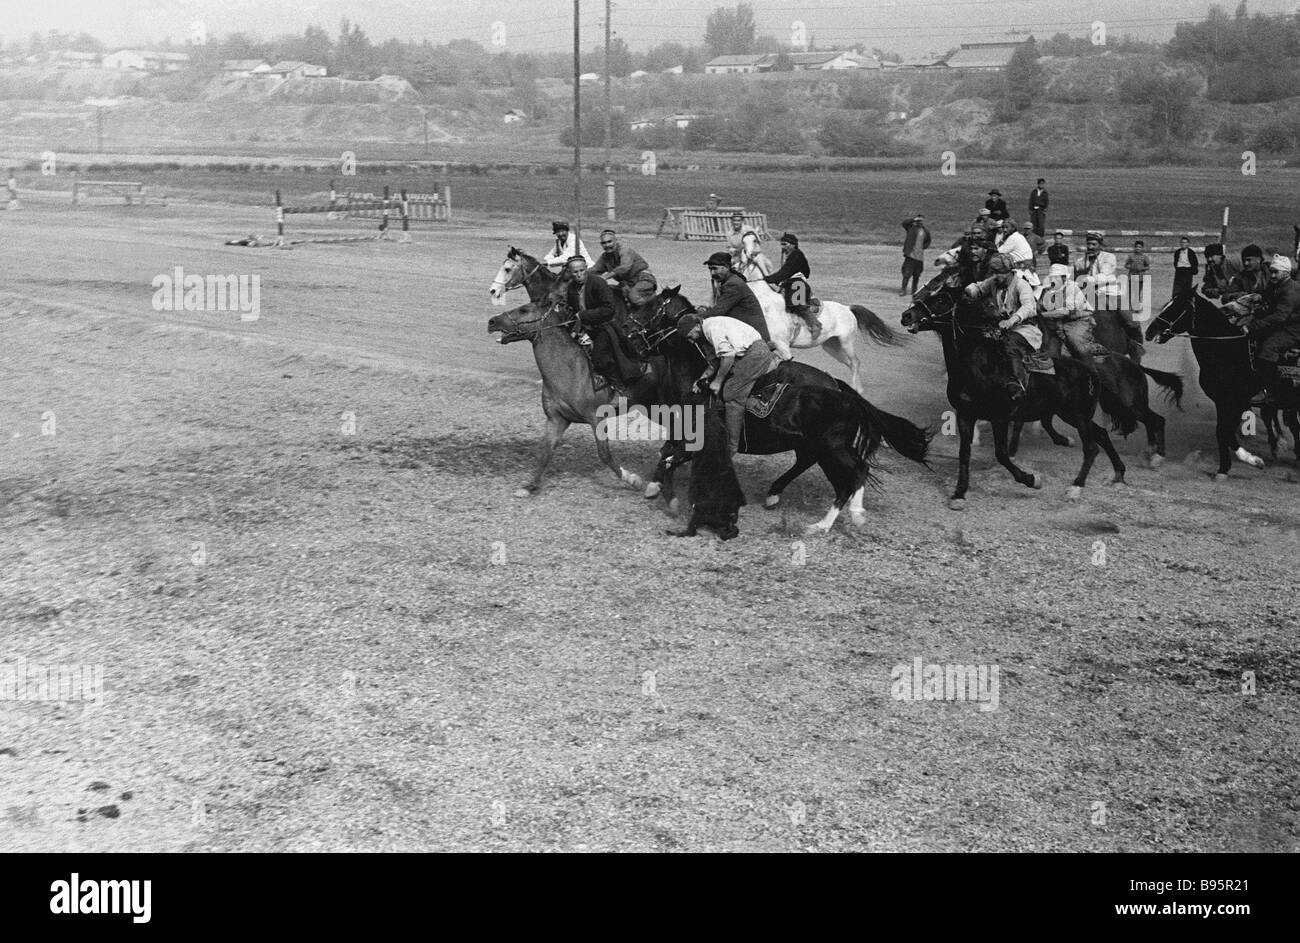 Racing for a goat carcass is one of the most popular Tajik folk equestrian sports - Stock Image